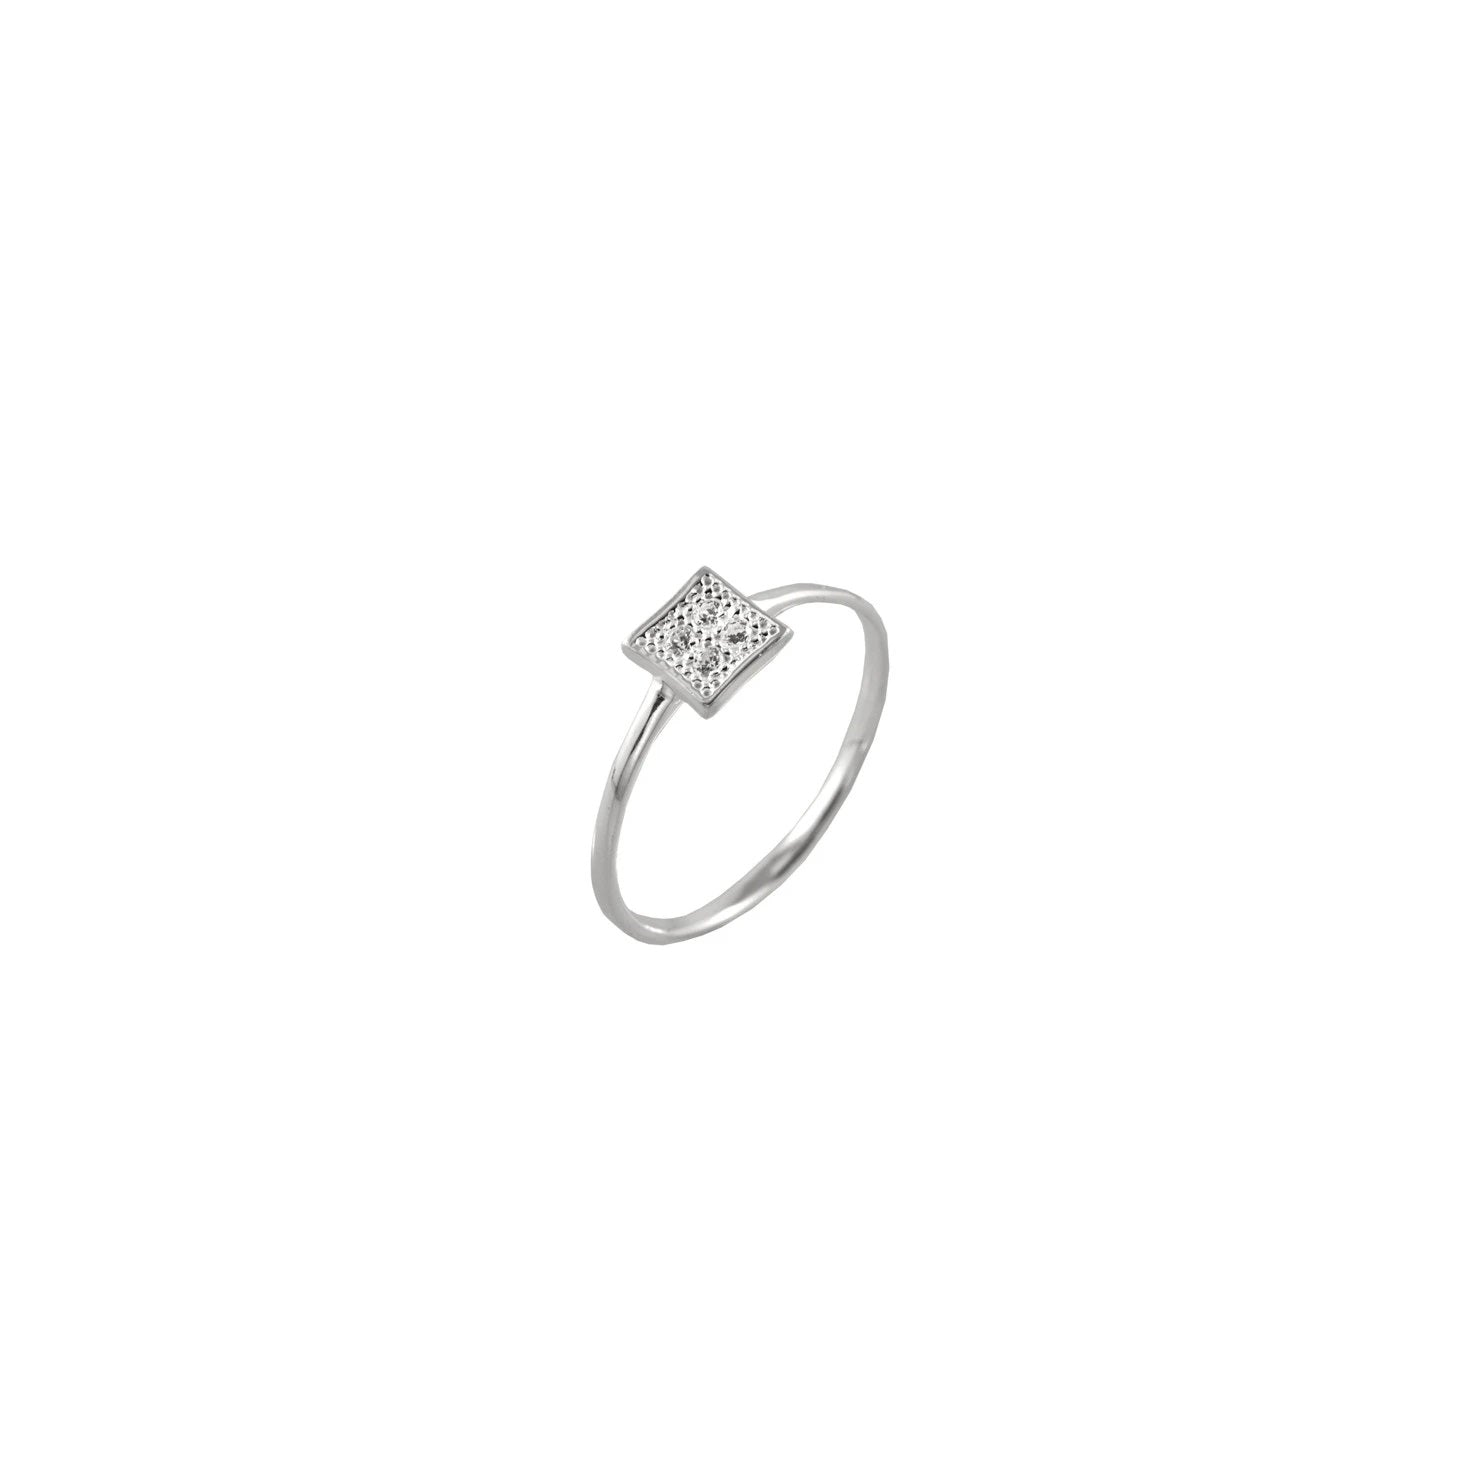 TINY DETAILED SQUARE RING